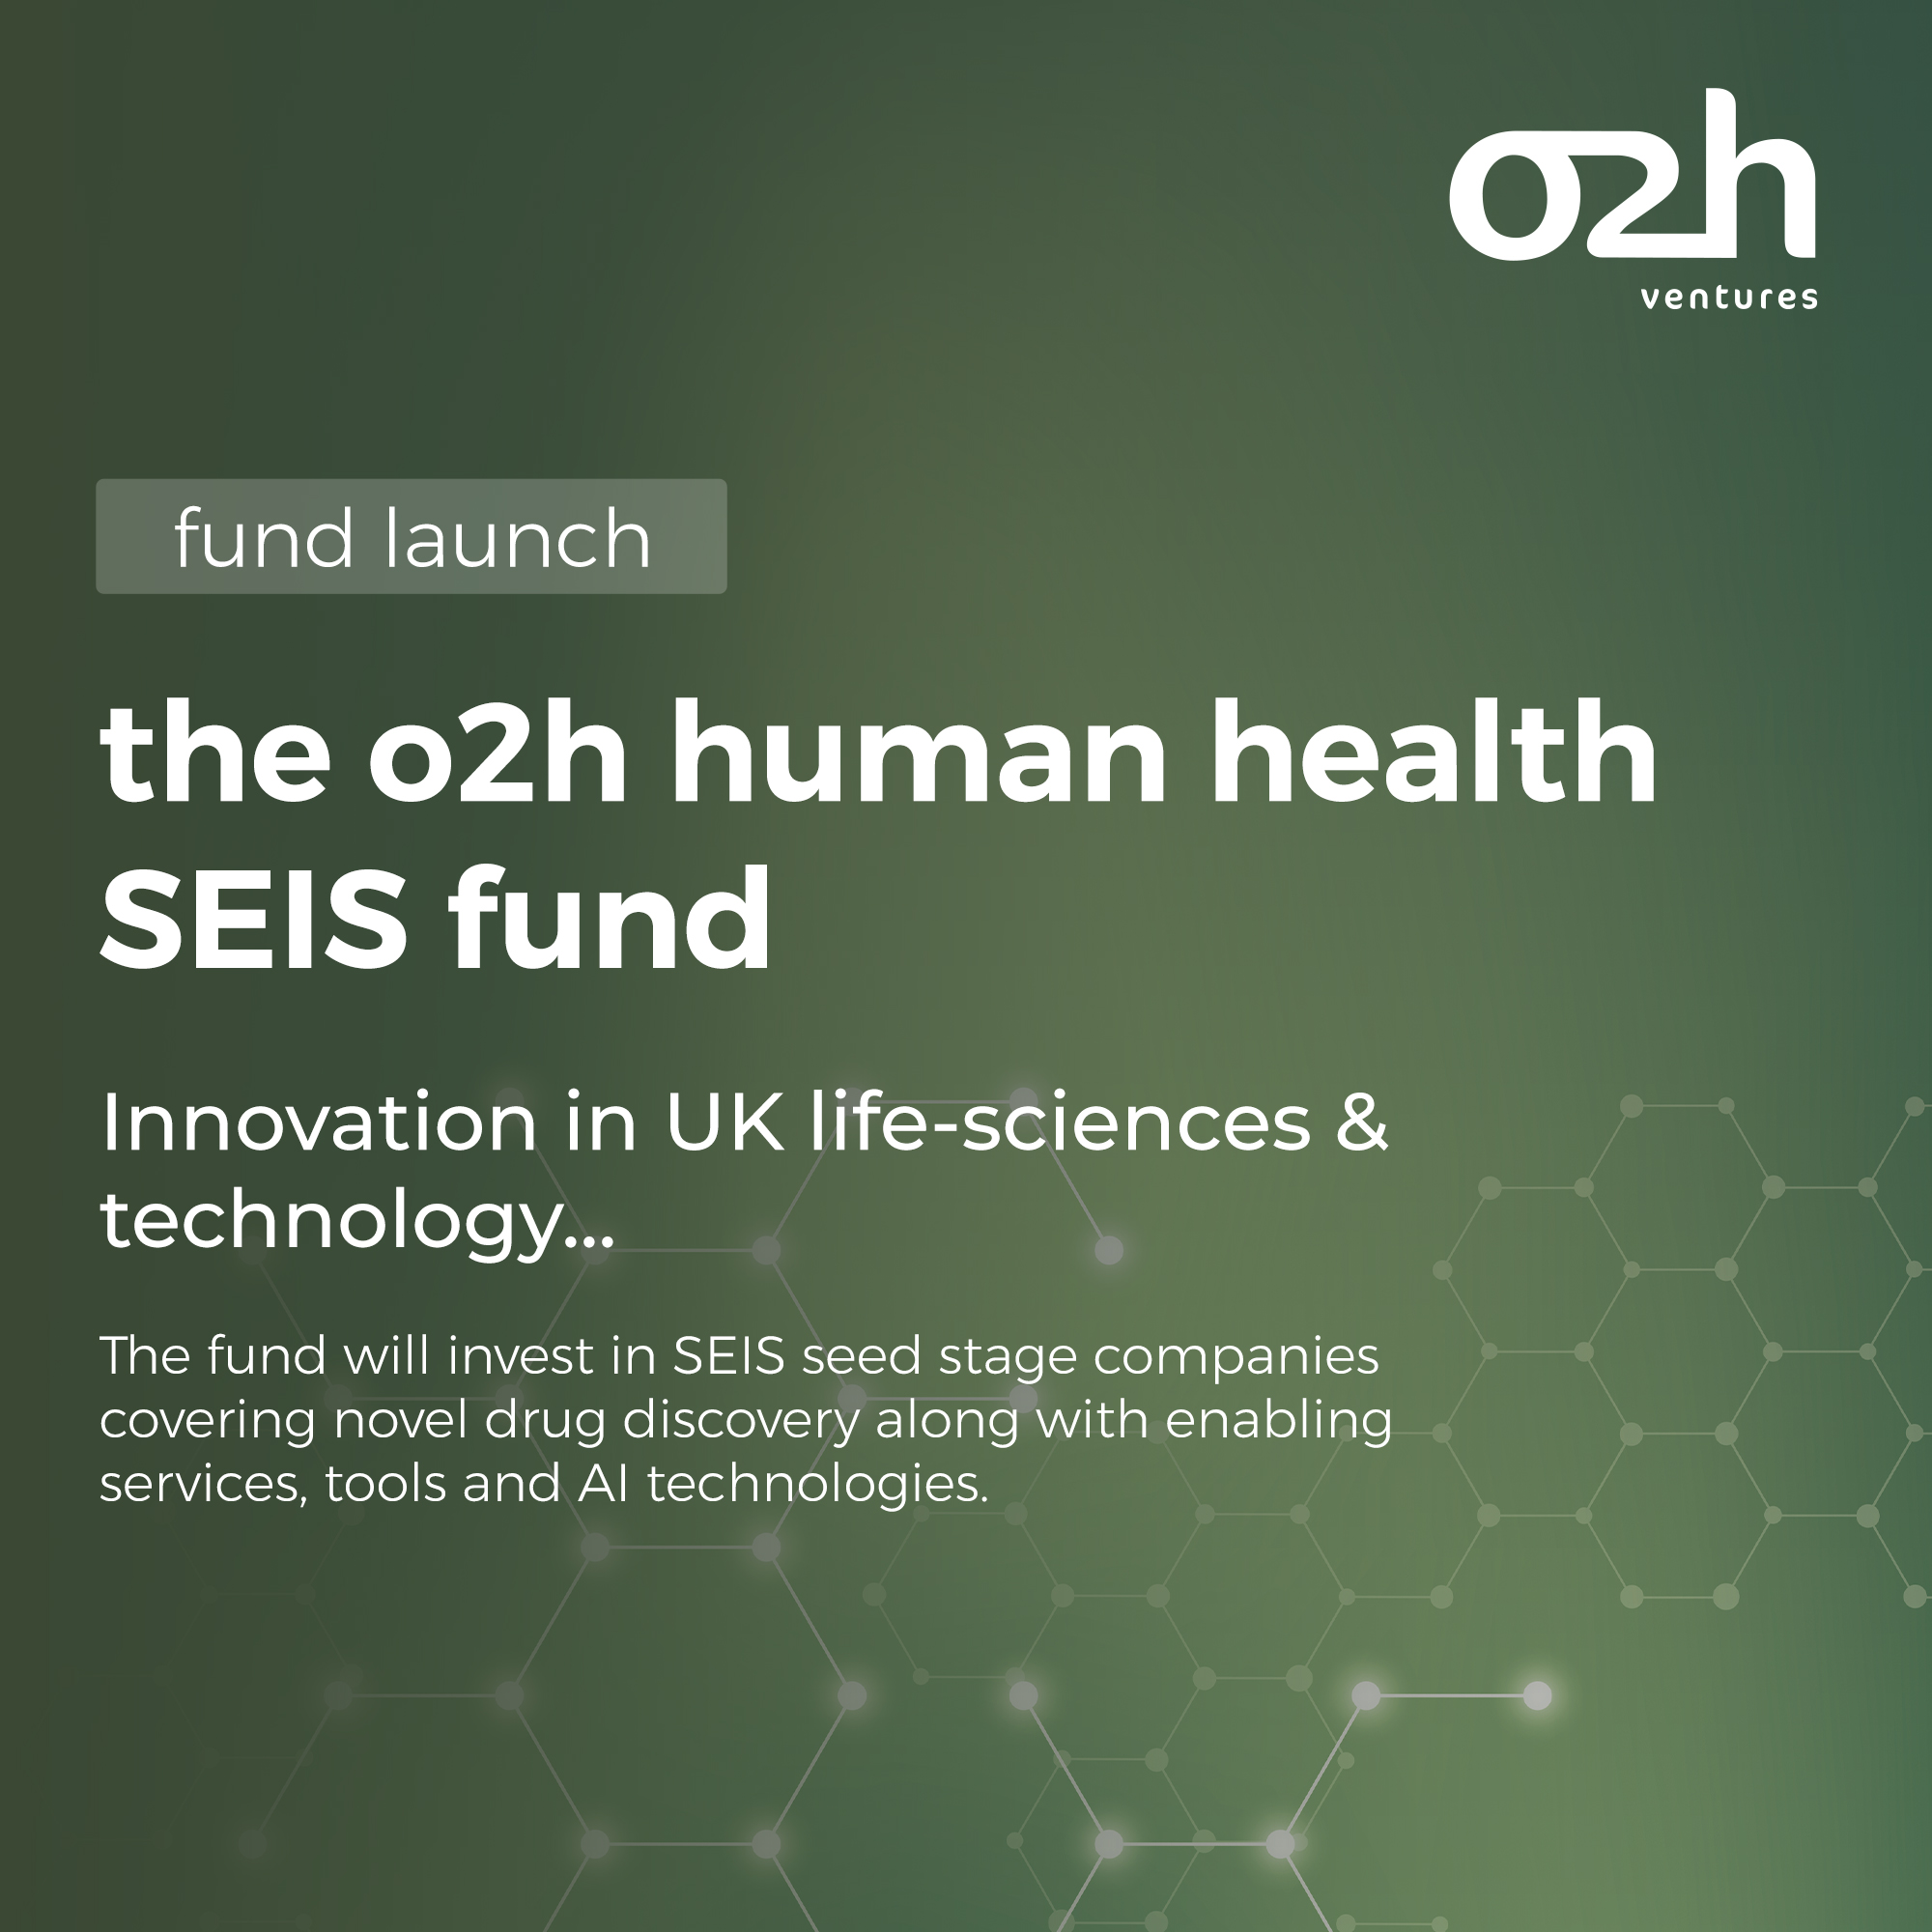 o2hventurs_SEIS Fund_Launch_LI_v2